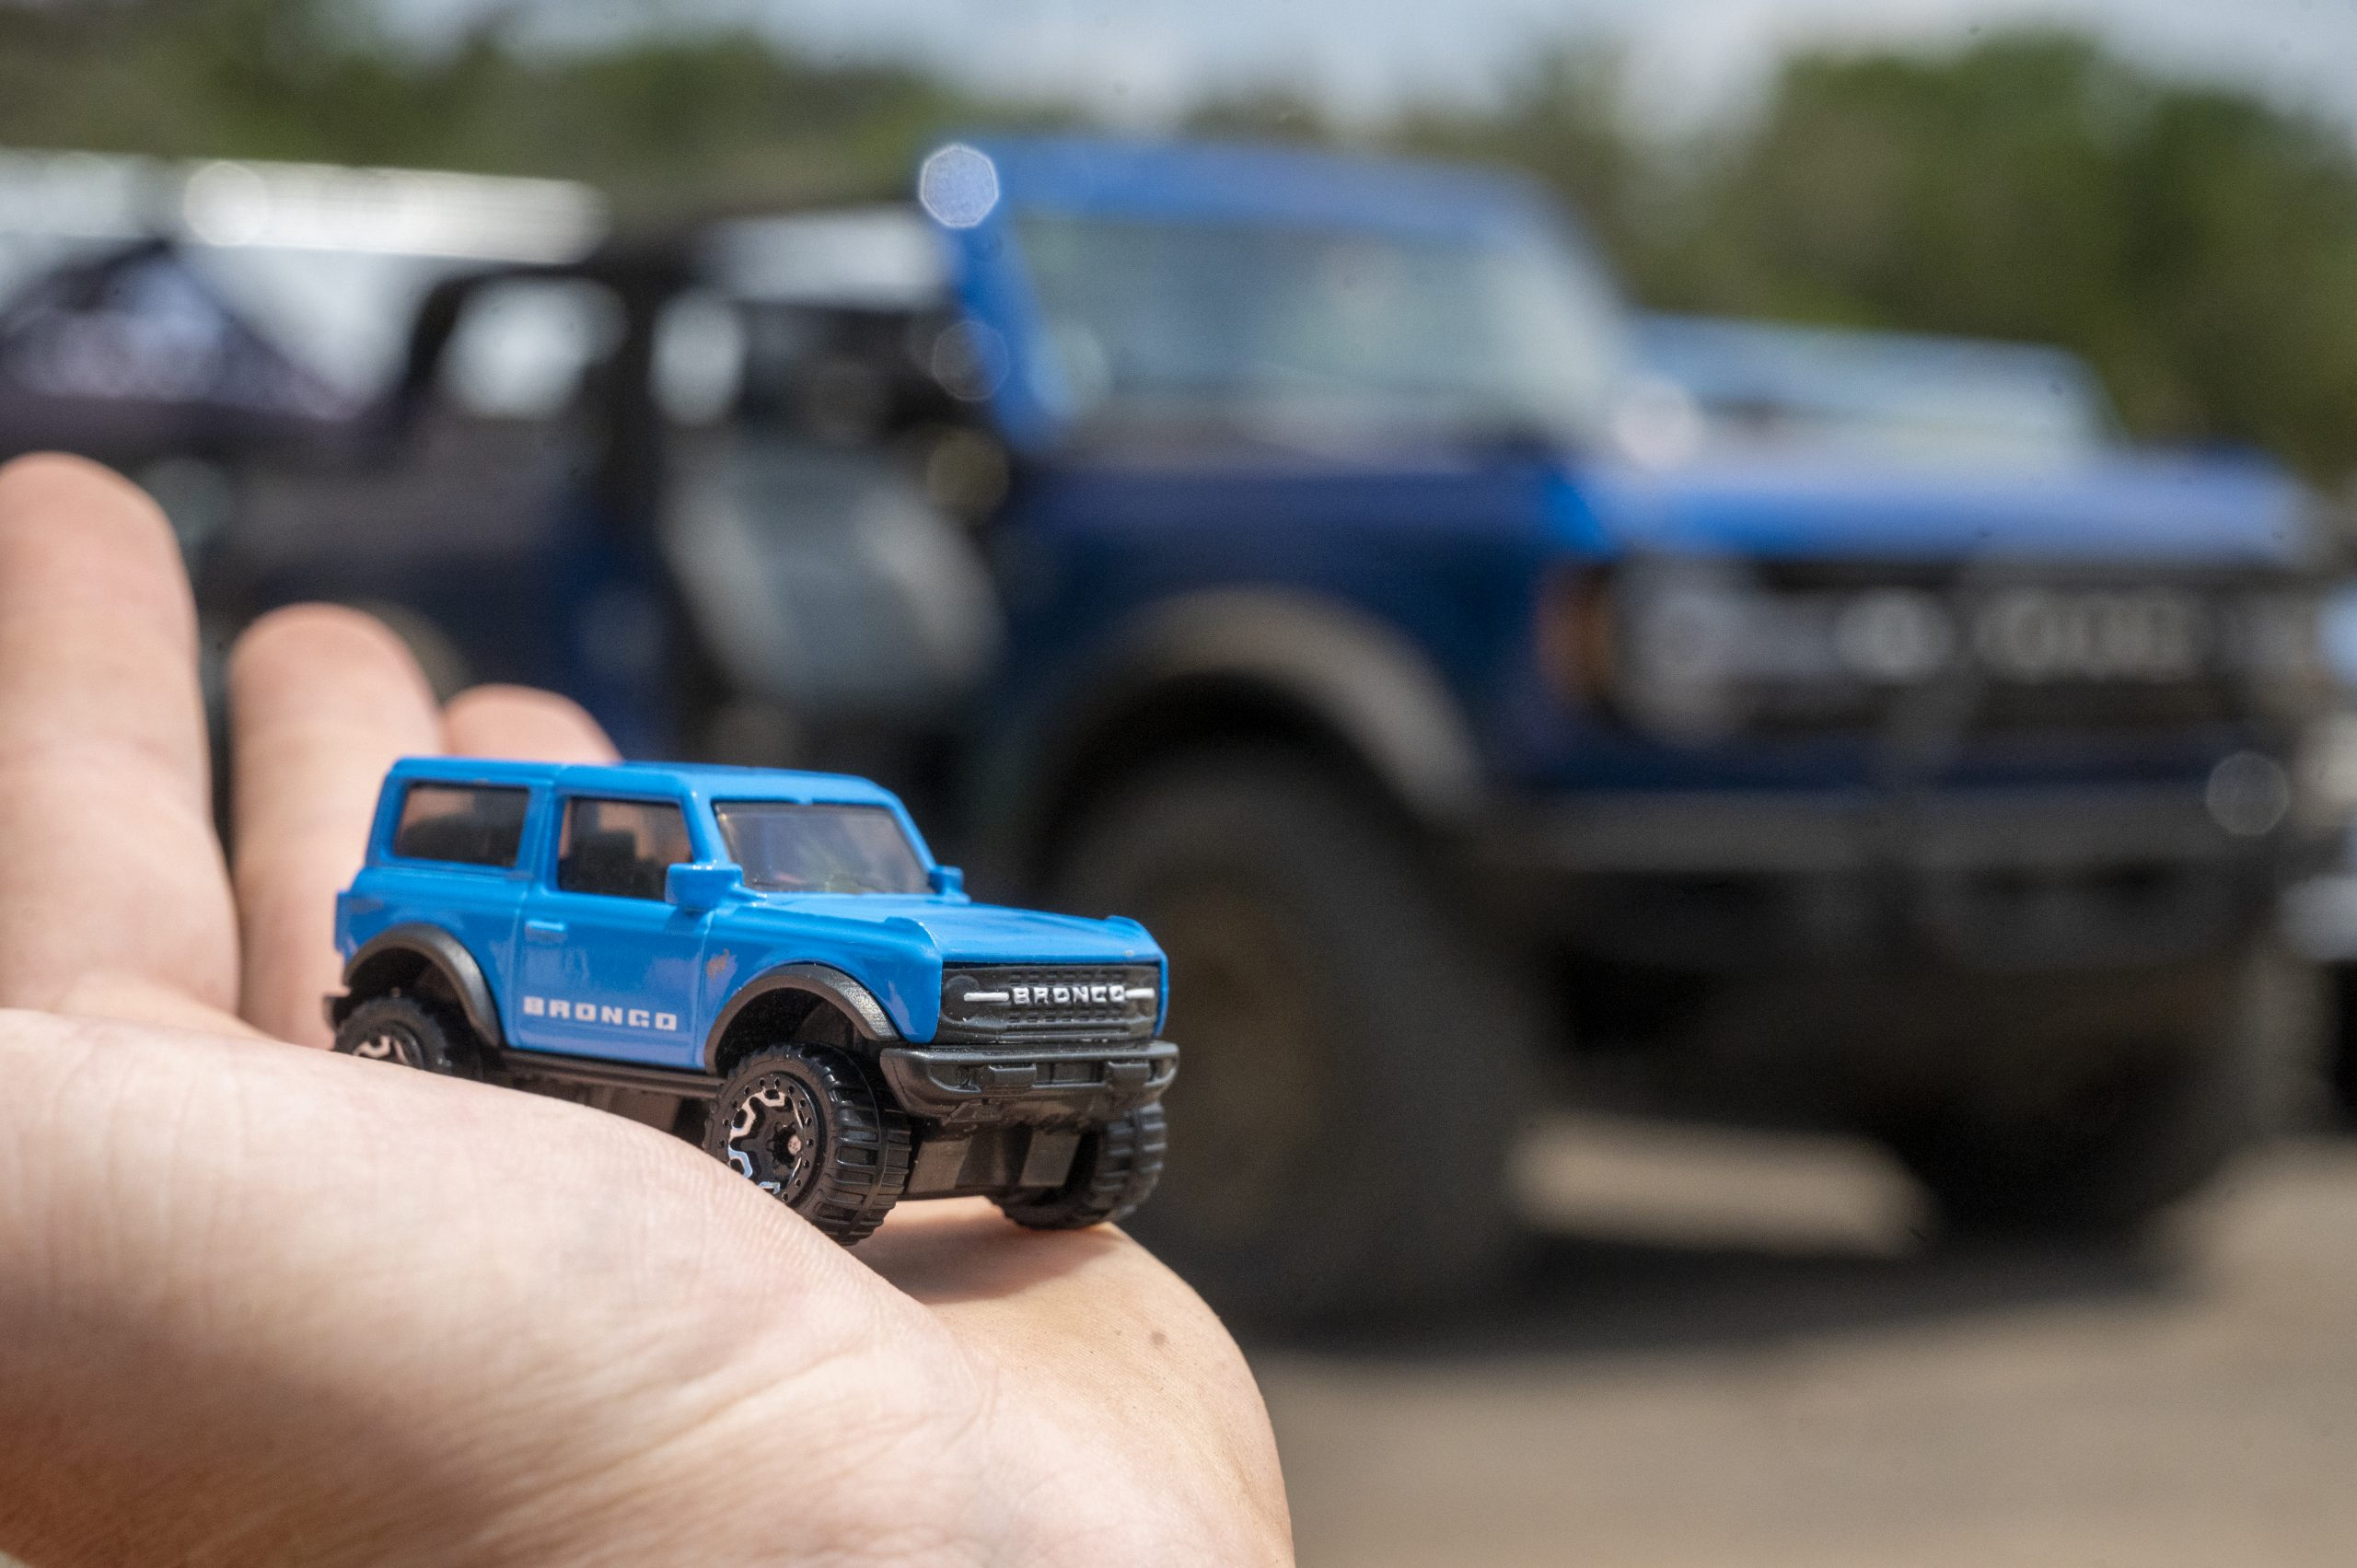 2021 Ford Bronco hot wheel and lifesize